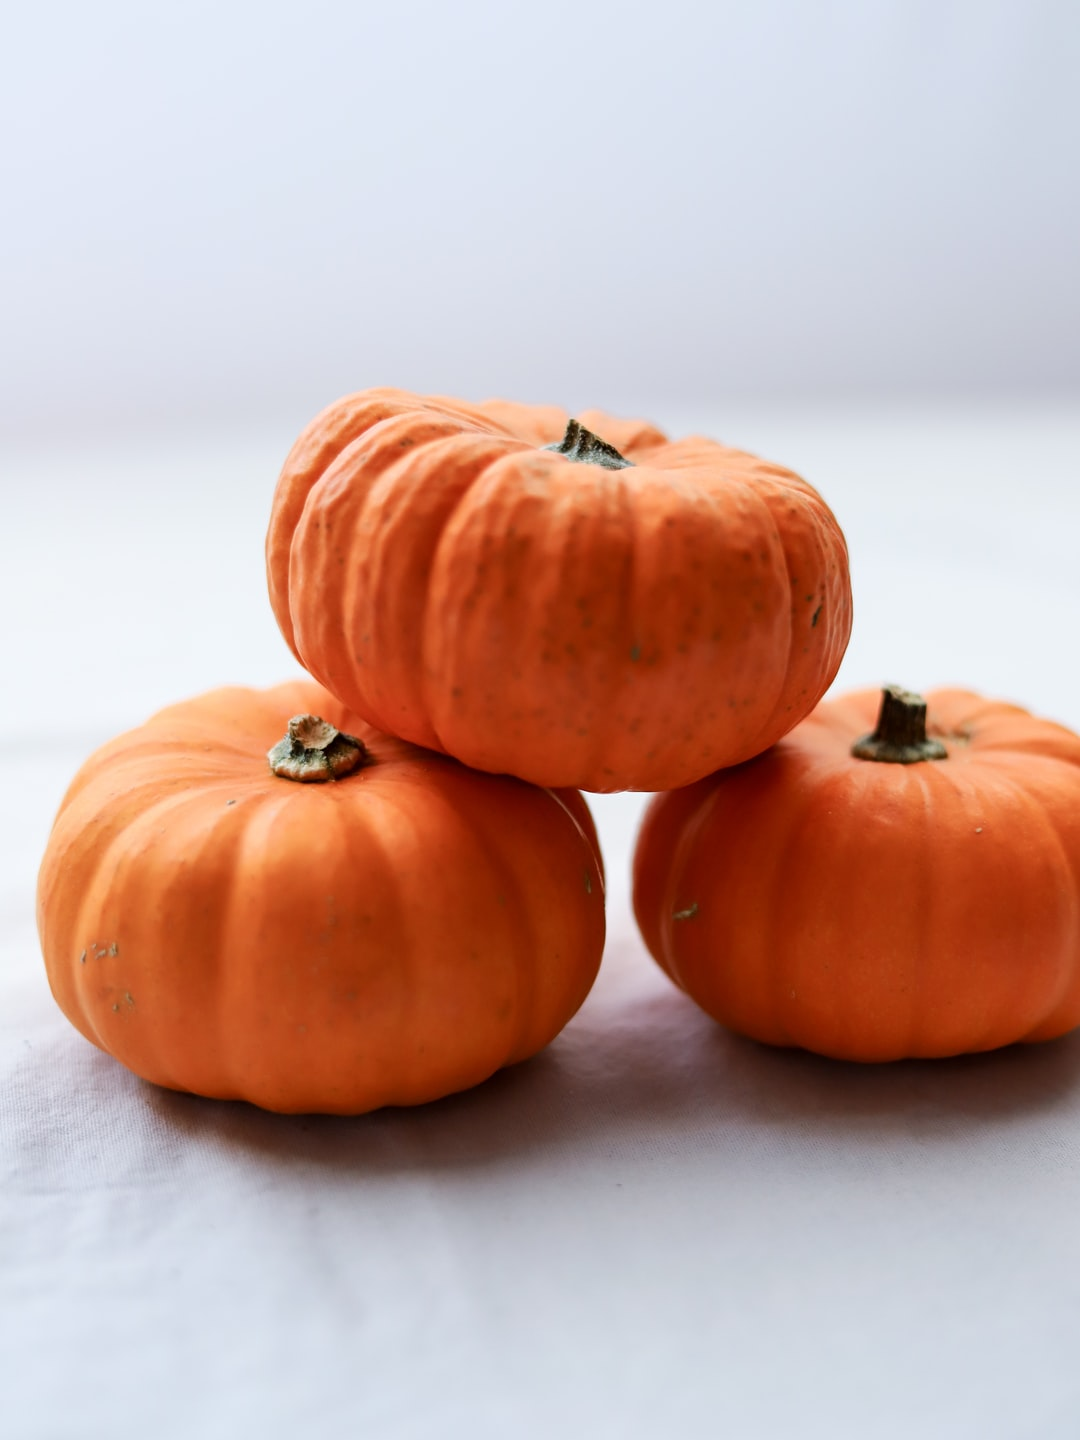 LIFESTYLE Butternut Squash vs Pumpkin: What's the Difference and Which Is Better for You?